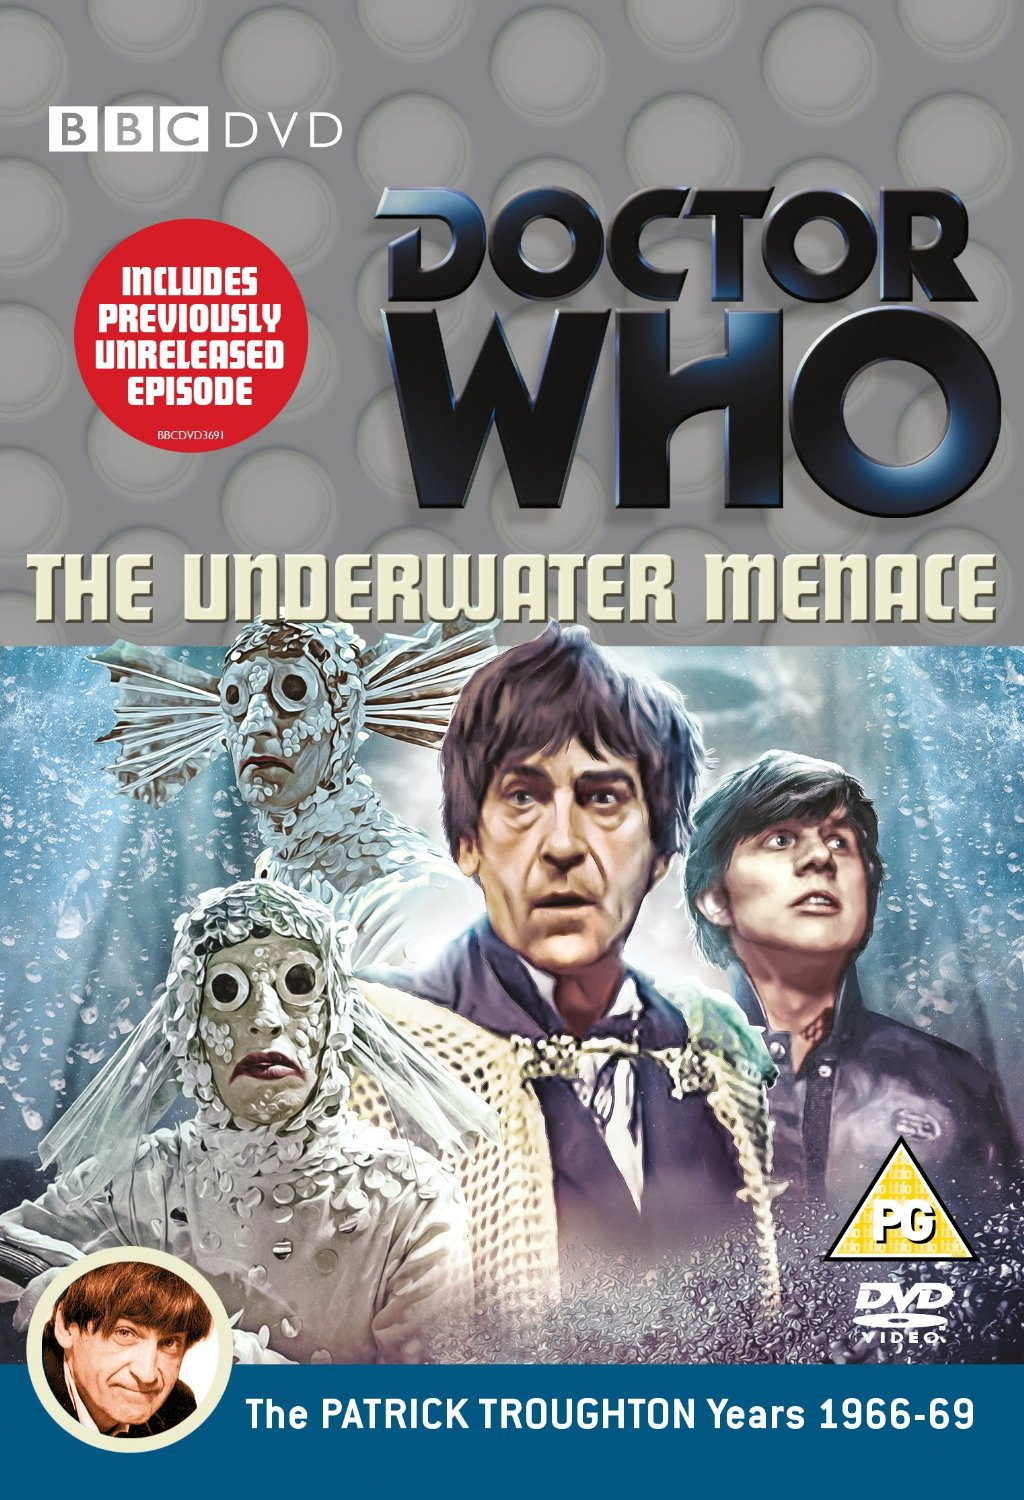 Doctor Who: The Underwater Menace DVD review